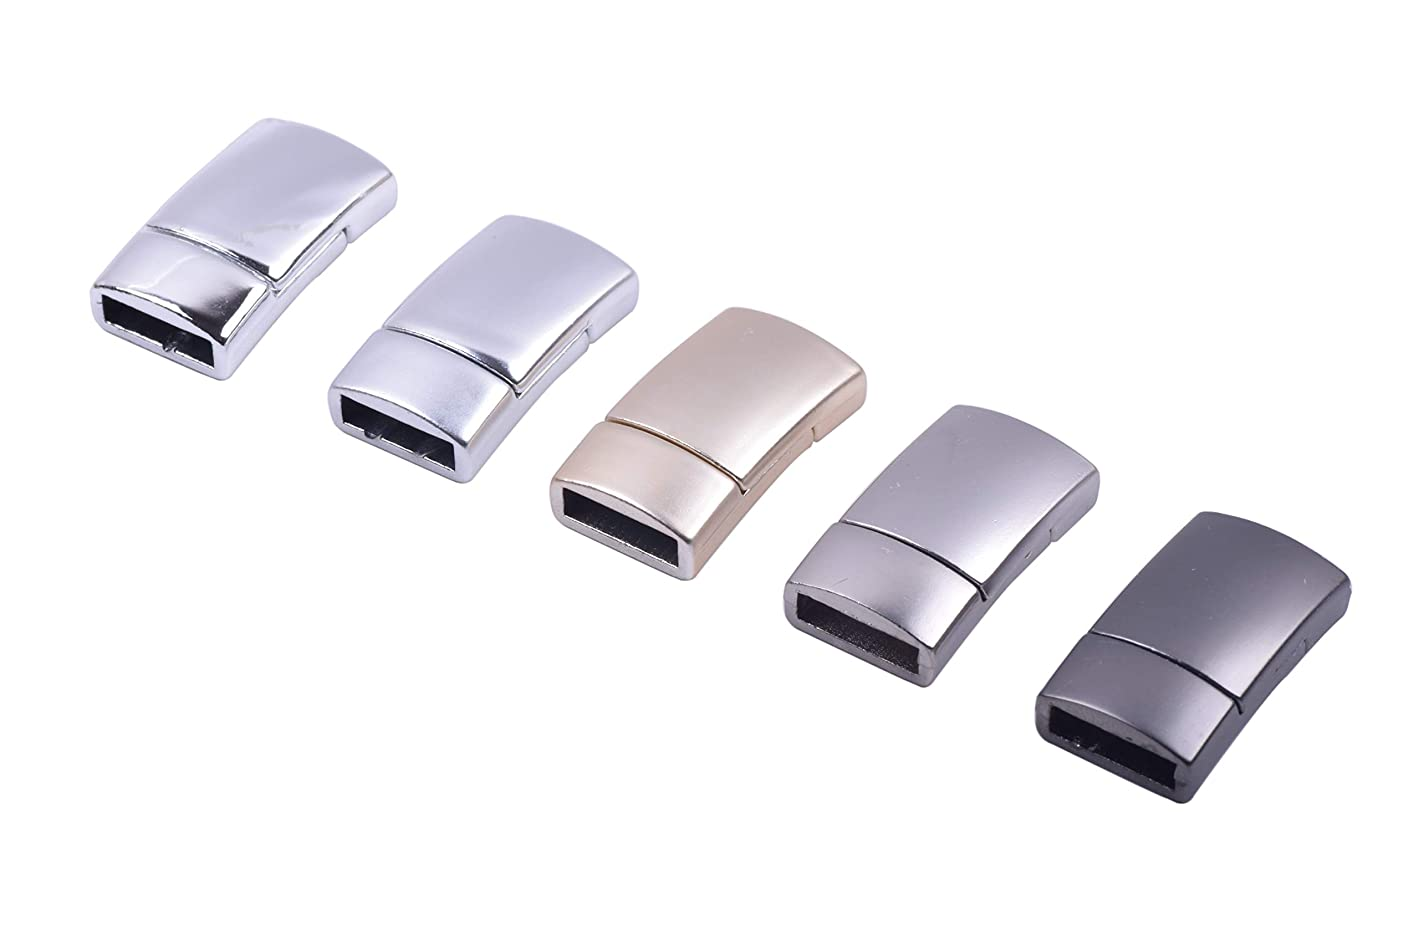 KONMAY 10 Sets 11.0x3.0mm Flat Magnetic Jewelry Clasps for Bracelets, Mixed 5 Colors u77957711668896